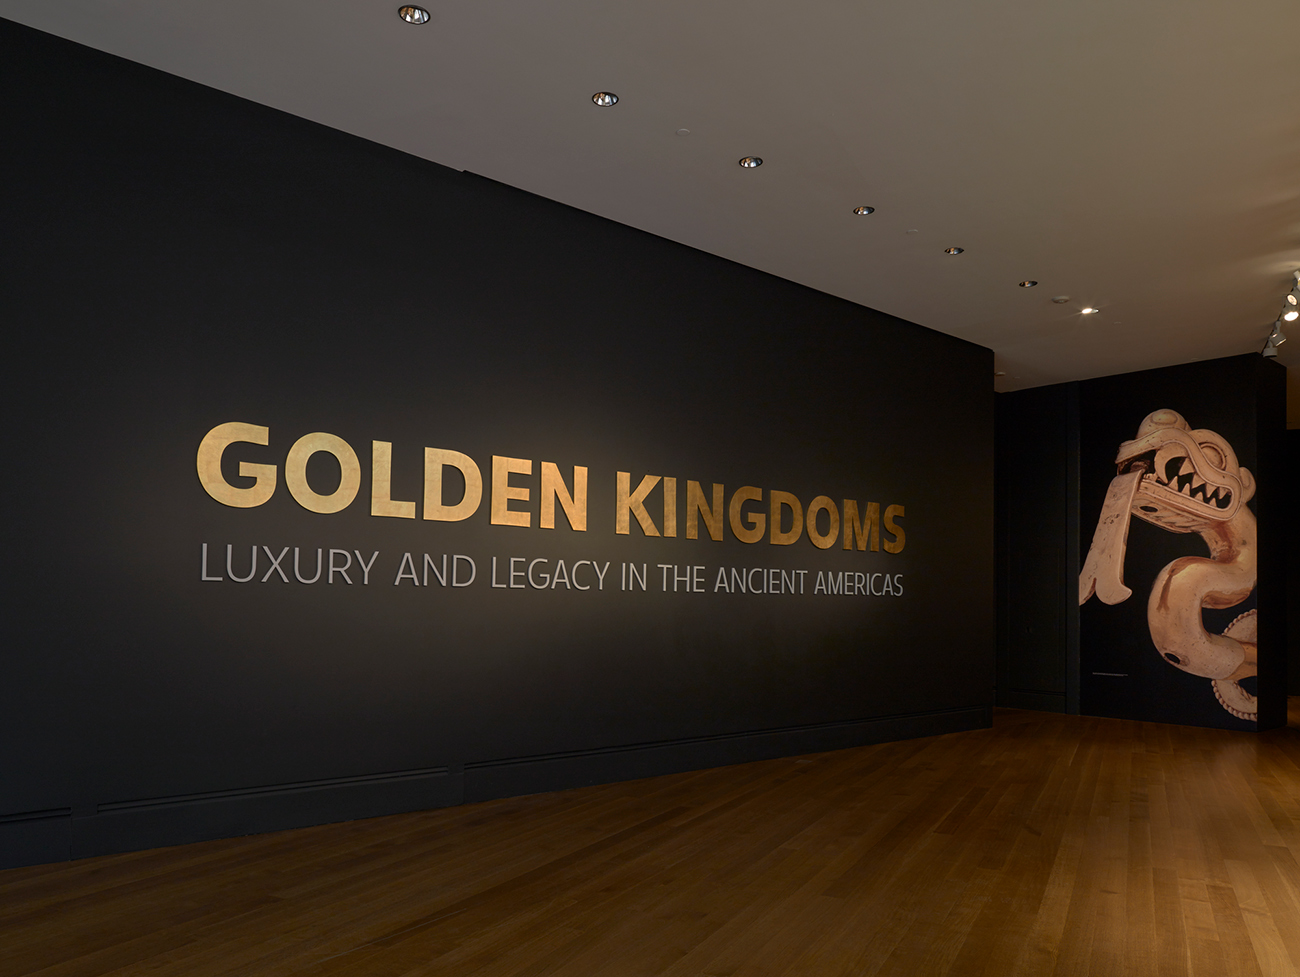 Title wall of Golden Kingdoms at the Getty Center. Photos here and below: Rebecca Vera-Martinez